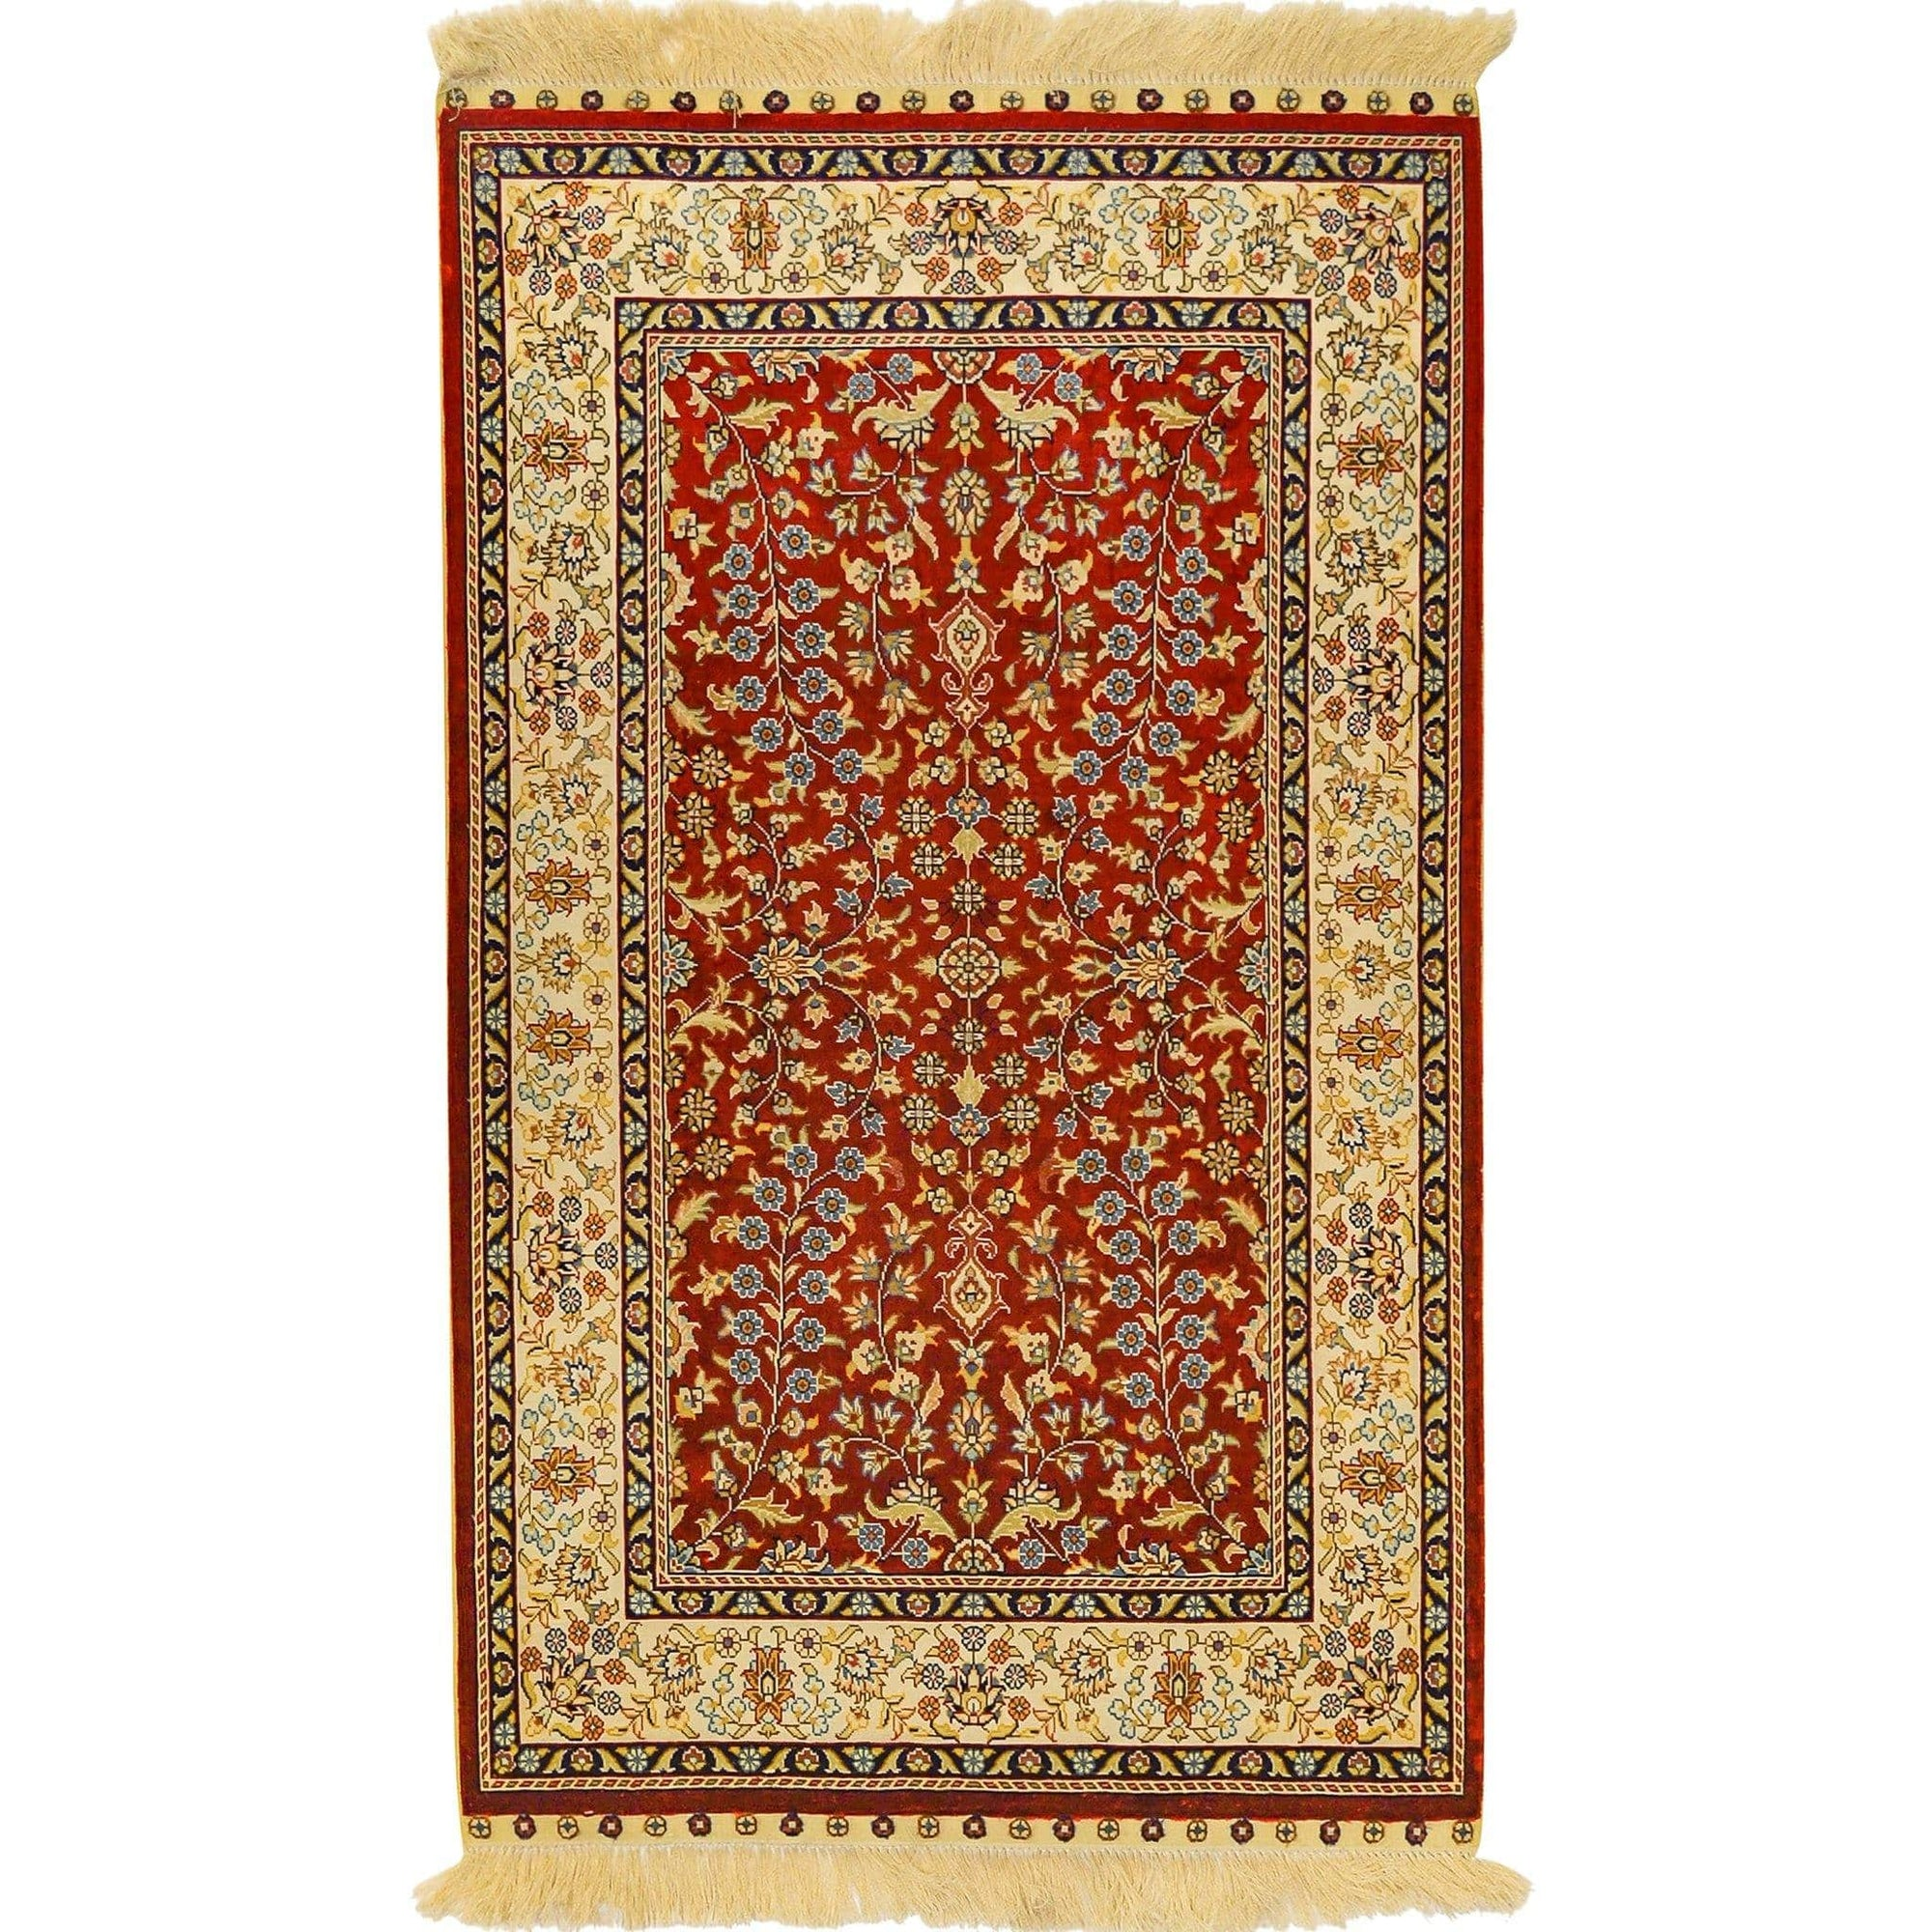 High Hand-knotted Pure Kashmiri Silk Rug 76cm x 122cm Persian-Rug | House-of-Haghi | NewMarket | Auckland | NZ | Handmade Persian Rugs | Hand Knotted Persian Rugs